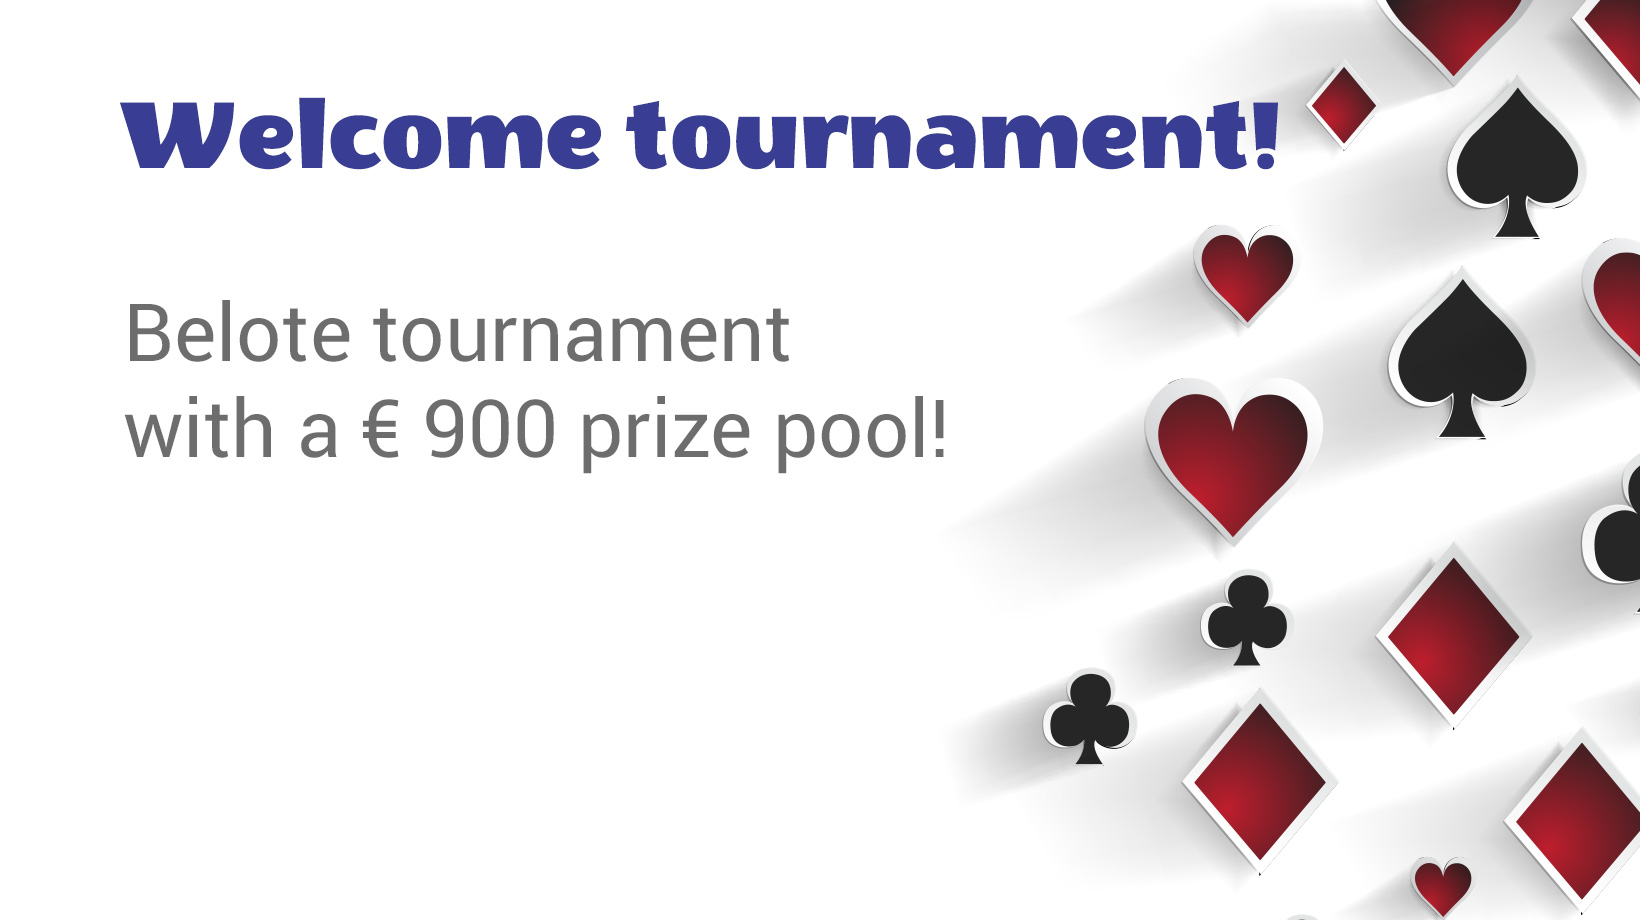 Welcome tournament